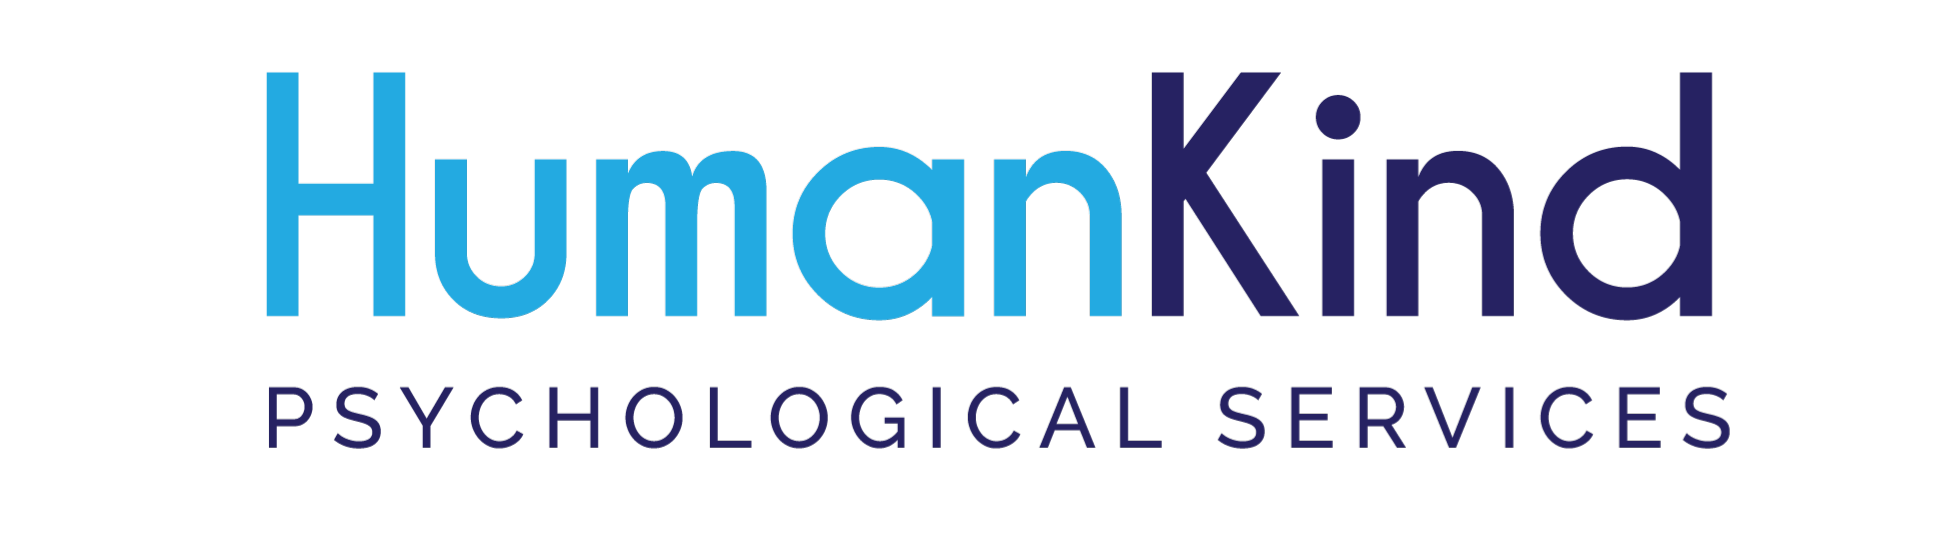 Logo of HumanKind Psychological Services